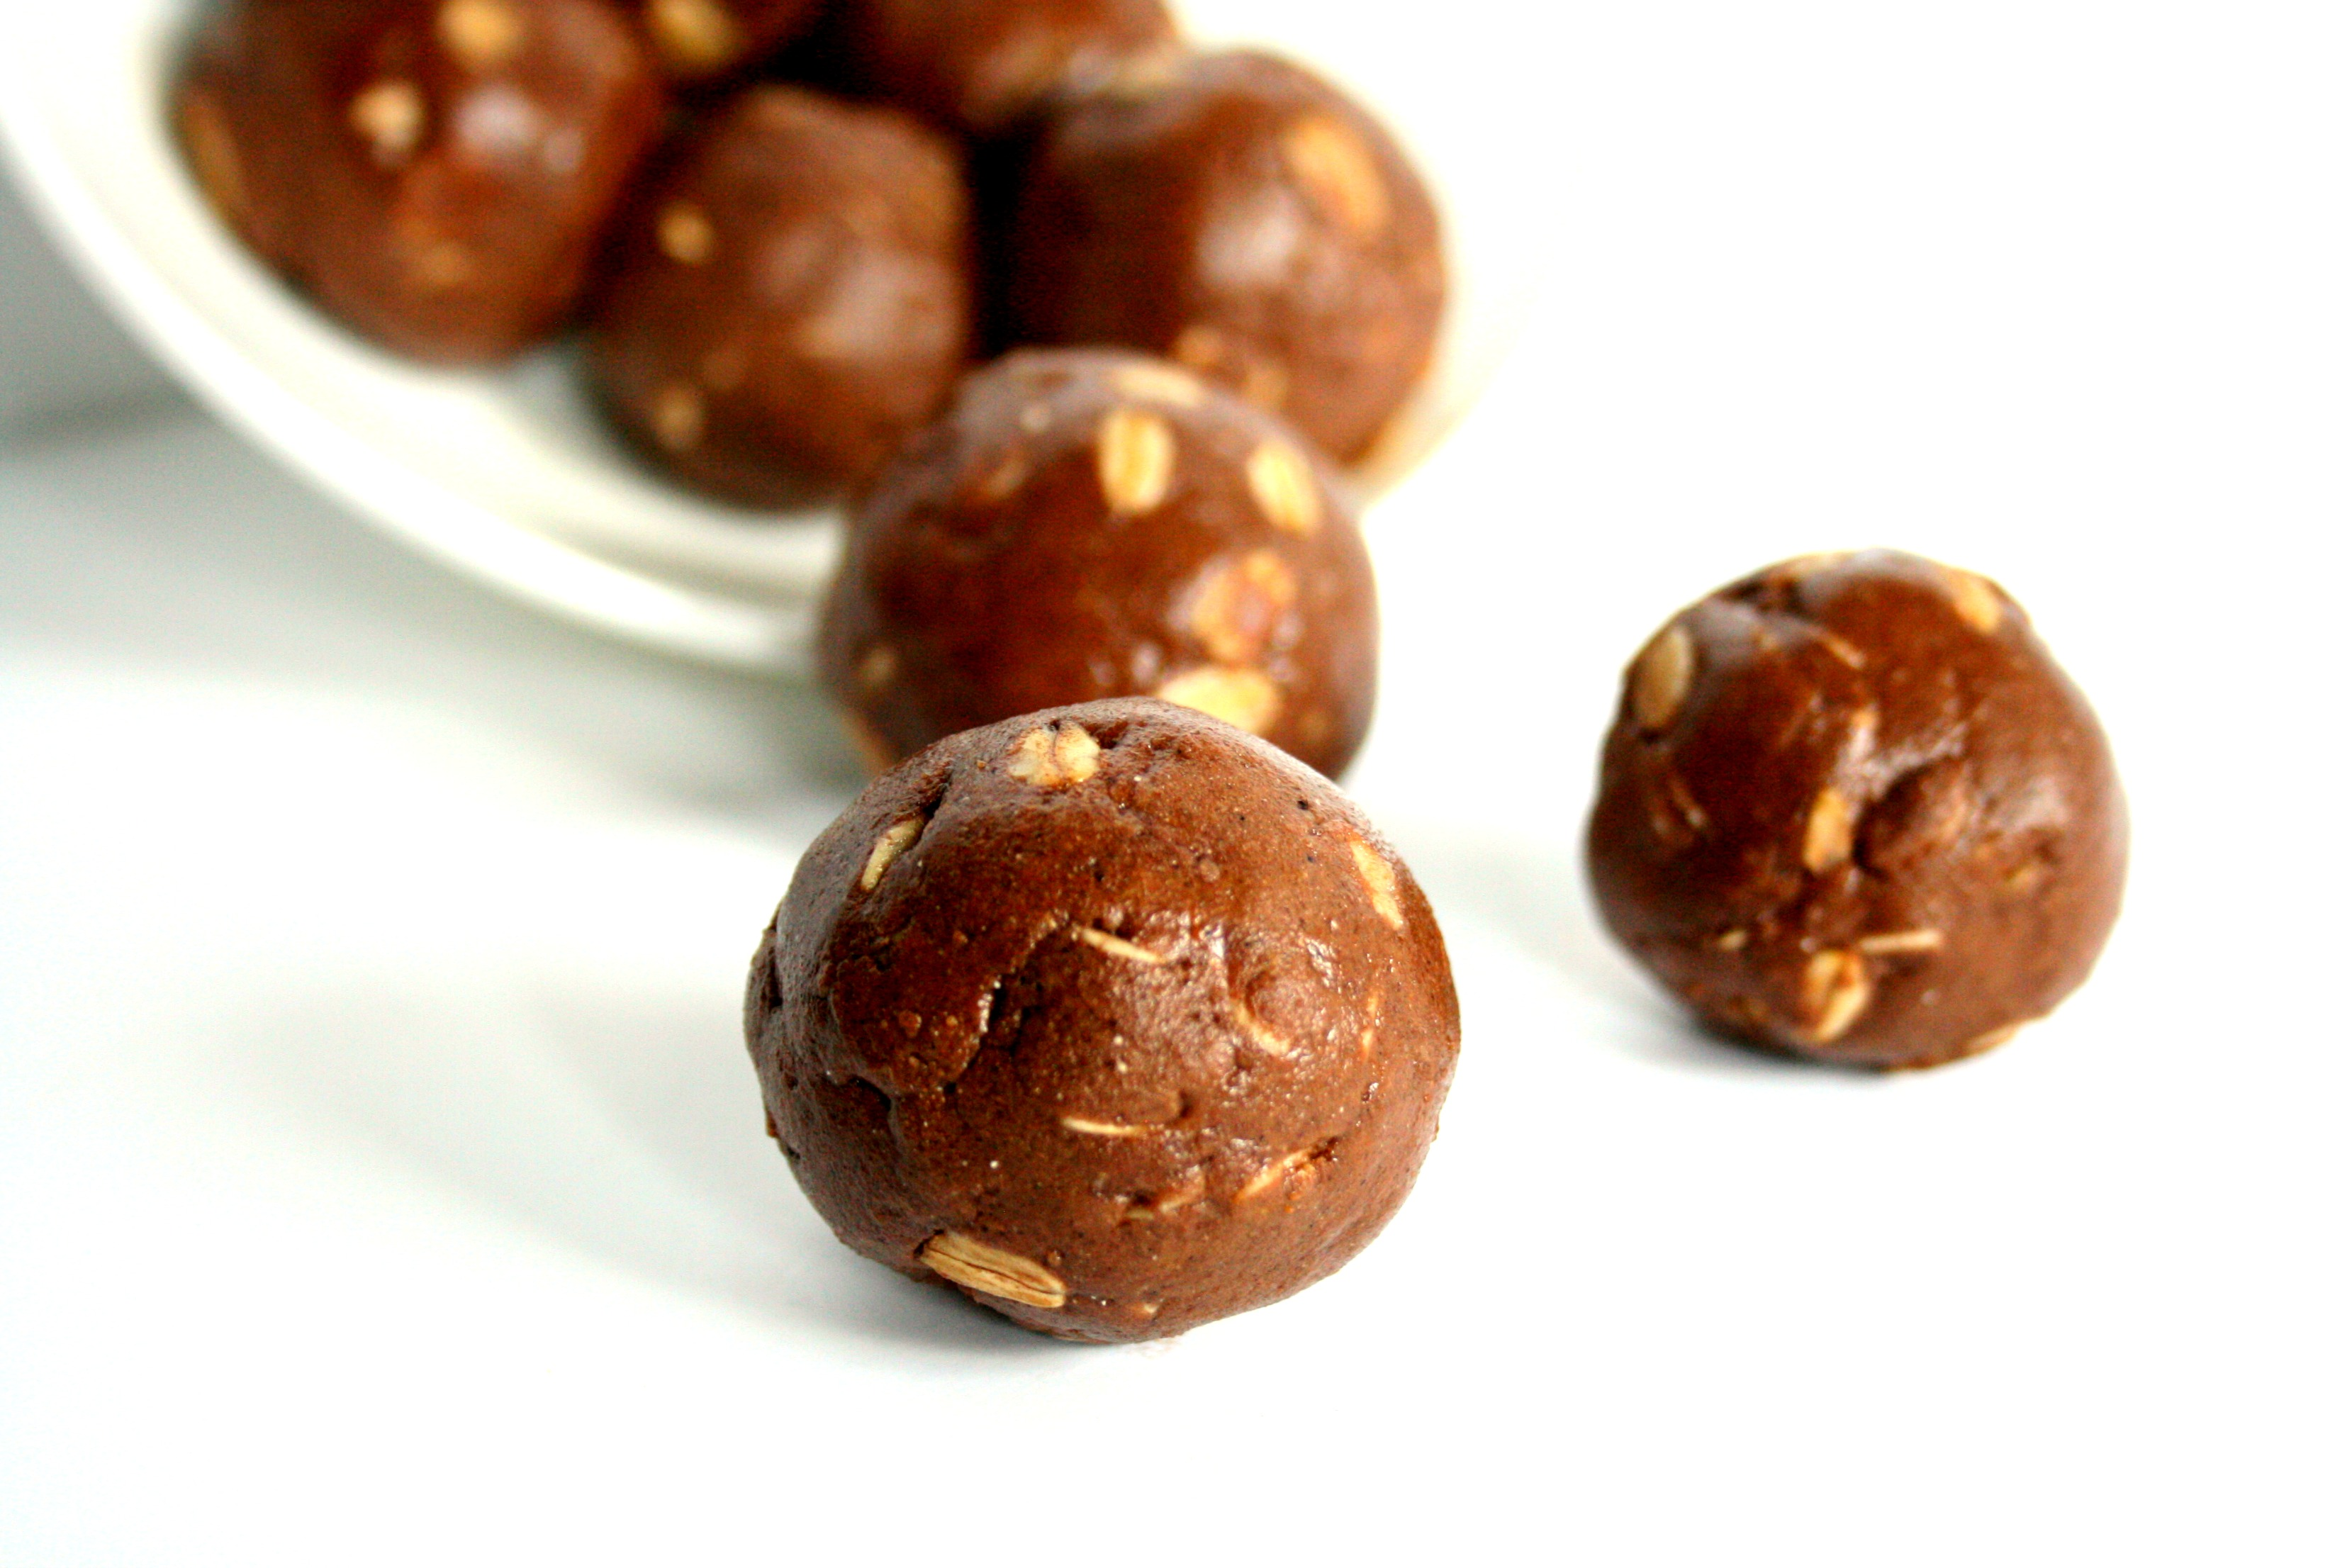 Chocolate Peanut Butter Protein Balls - Chelsea's Choices